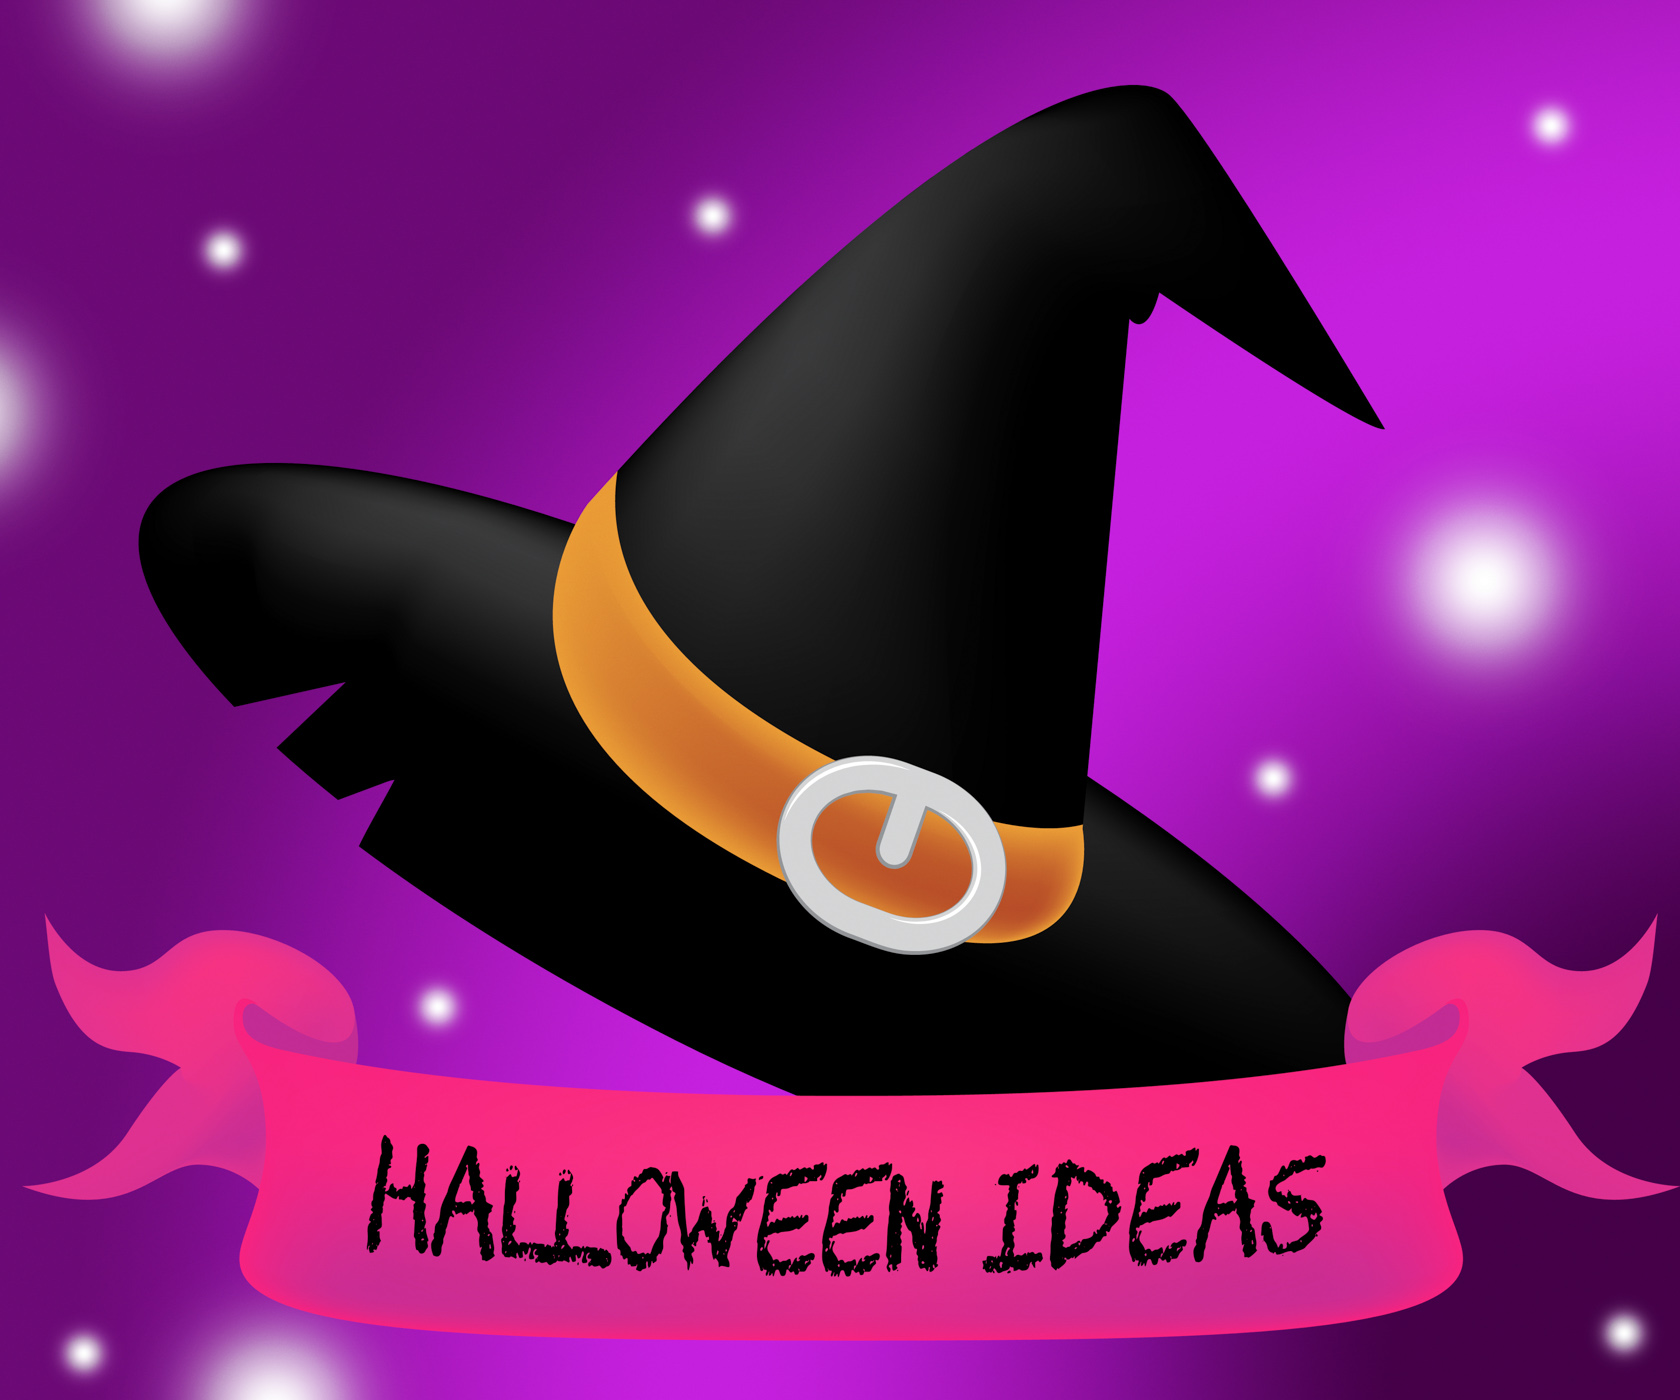 Halloween ideas means trick or treat and autumn photo